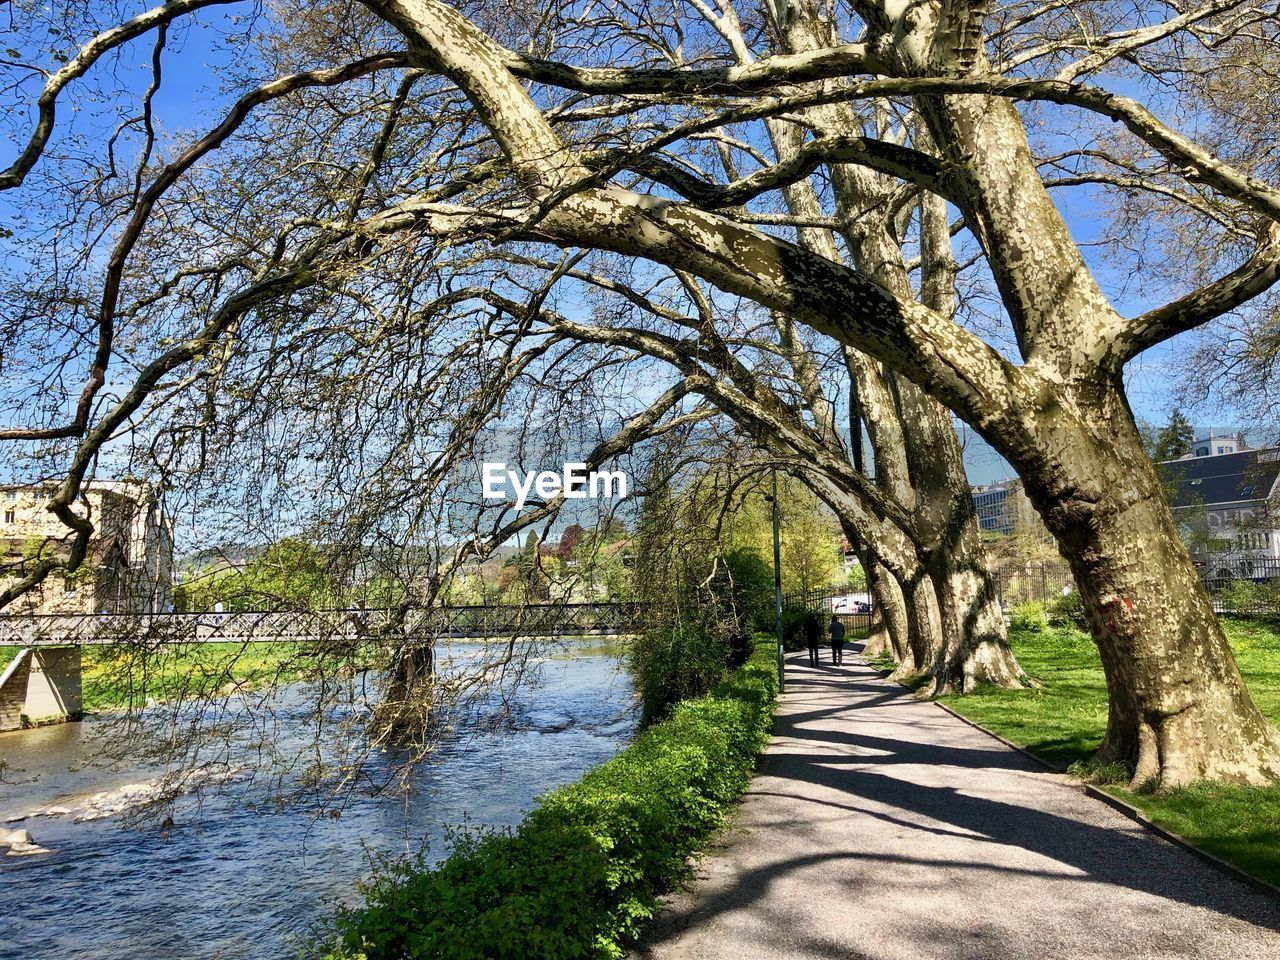 tree, plant, nature, day, water, sunlight, shadow, trunk, transportation, tree trunk, no people, direction, the way forward, branch, outdoors, tranquility, road, sky, river, diminishing perspective, treelined